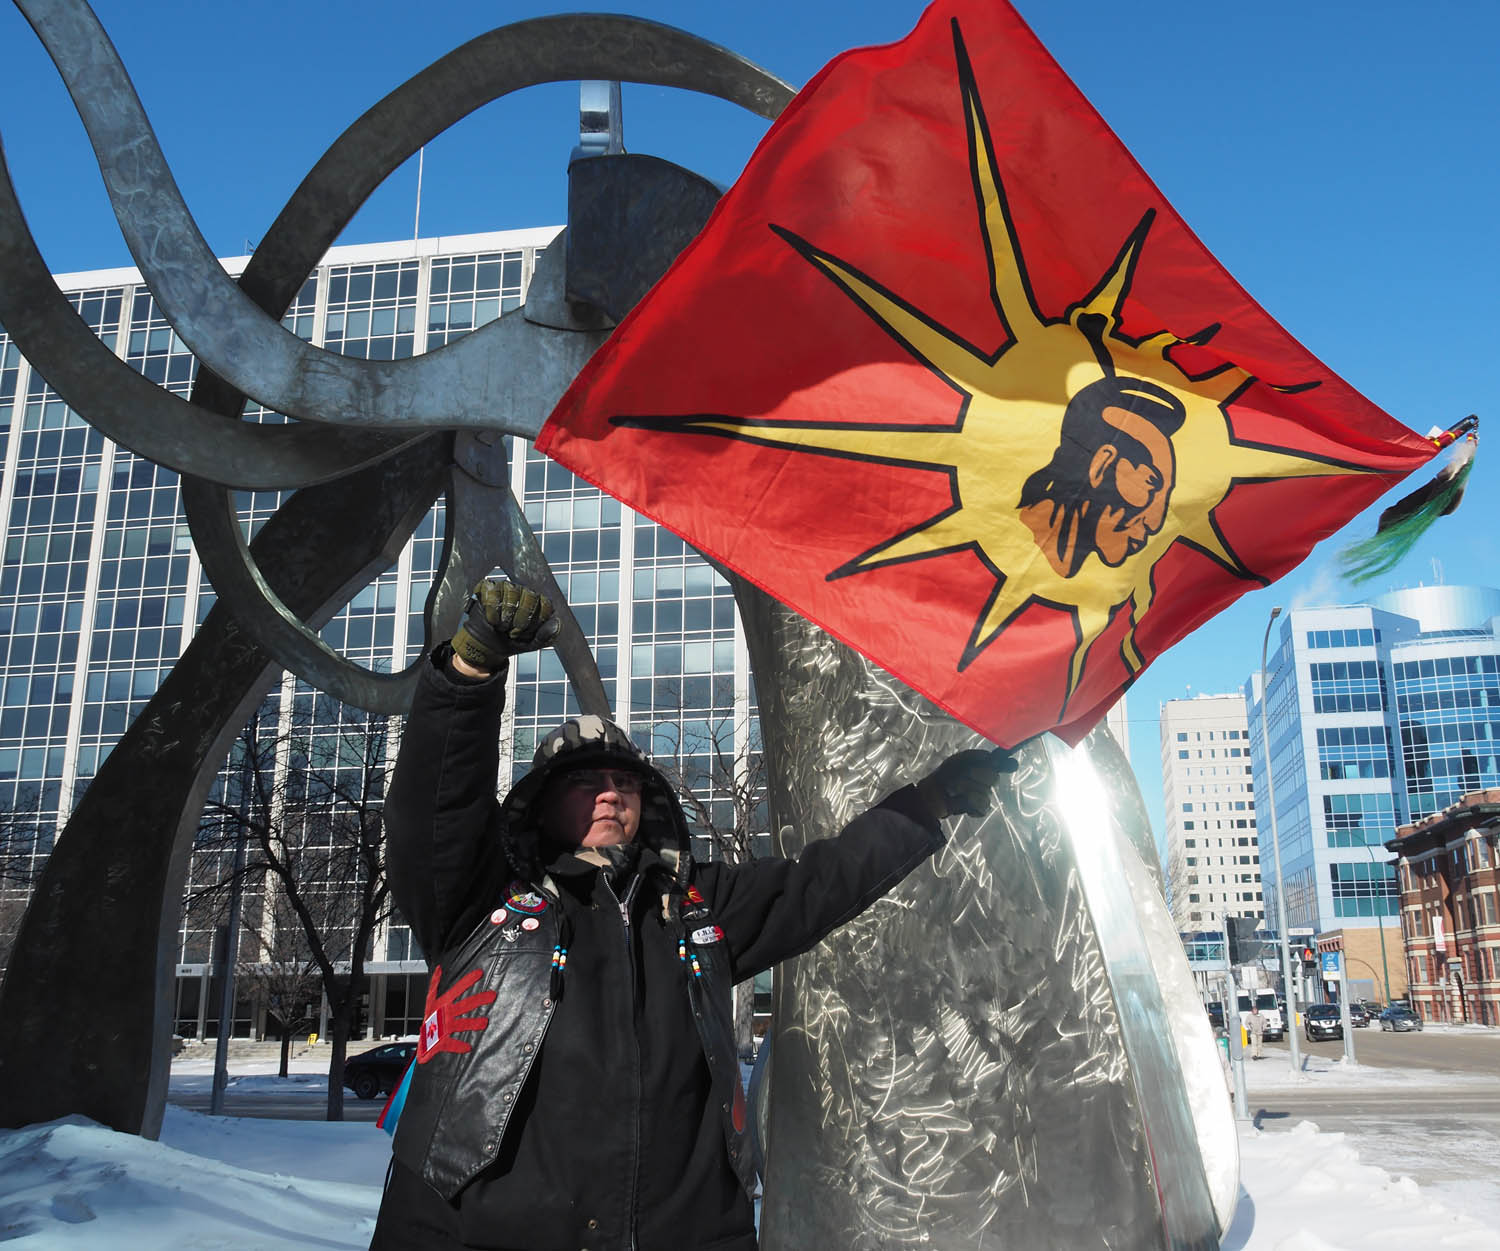 Protestor in march for indigenous rights